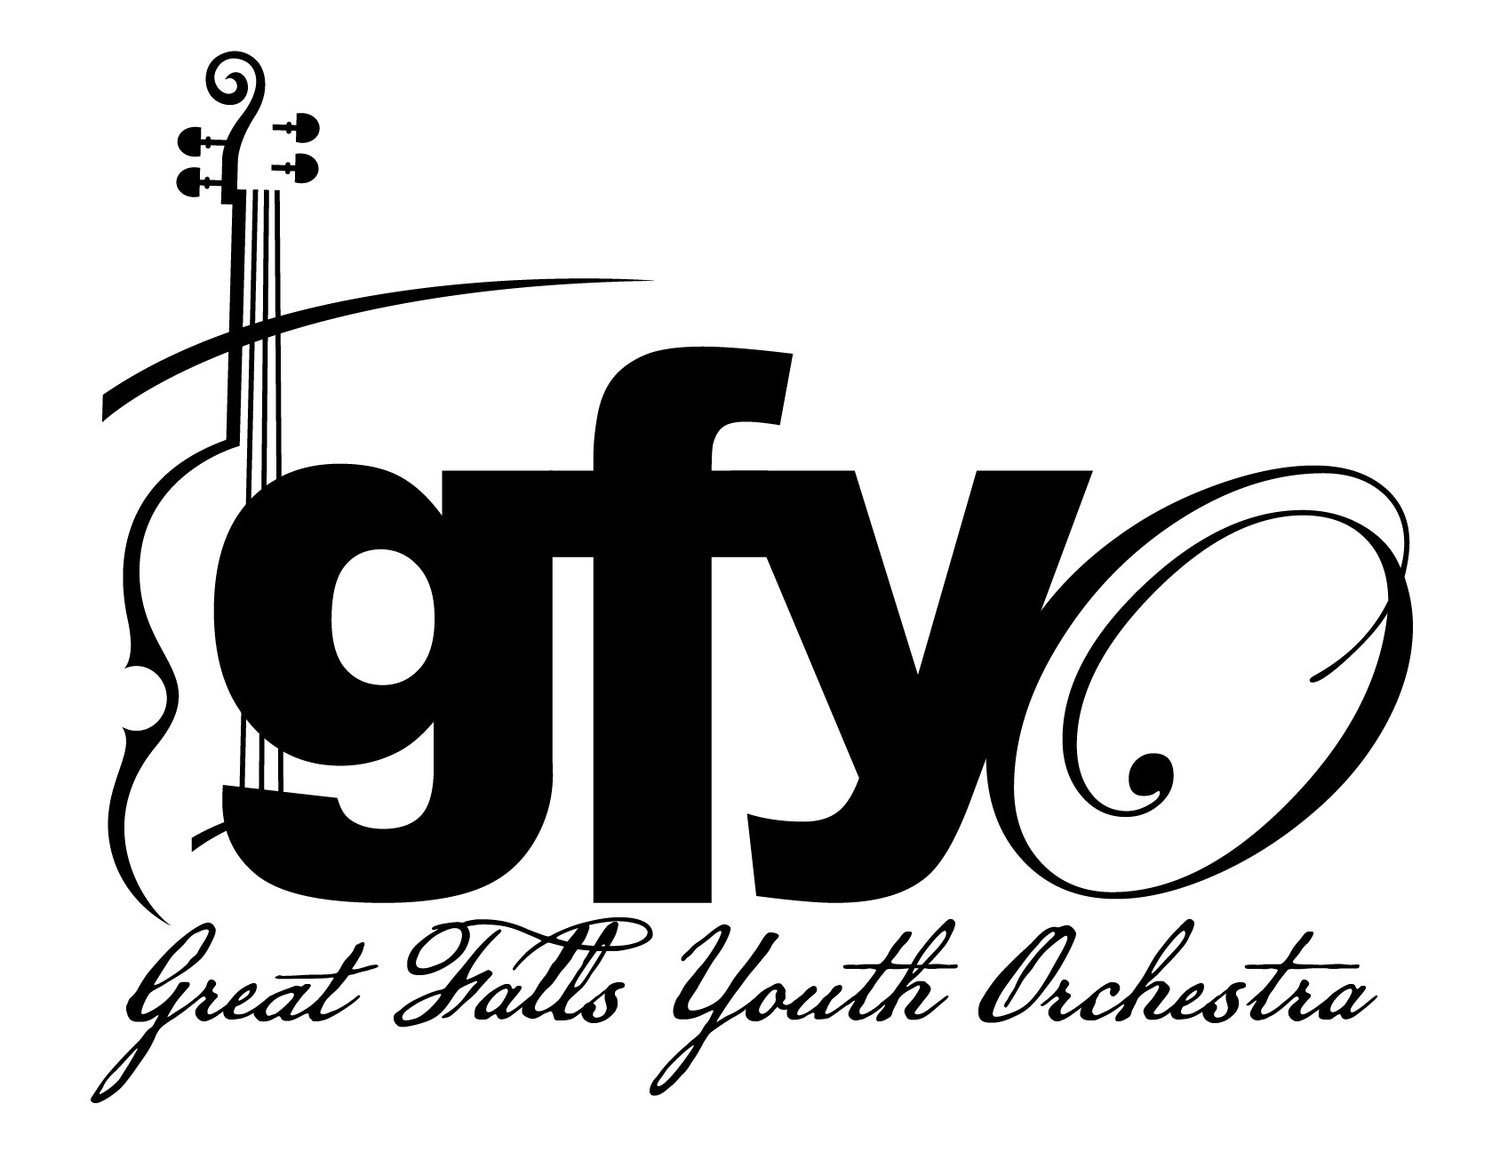 Great Falls Youth Orchestra